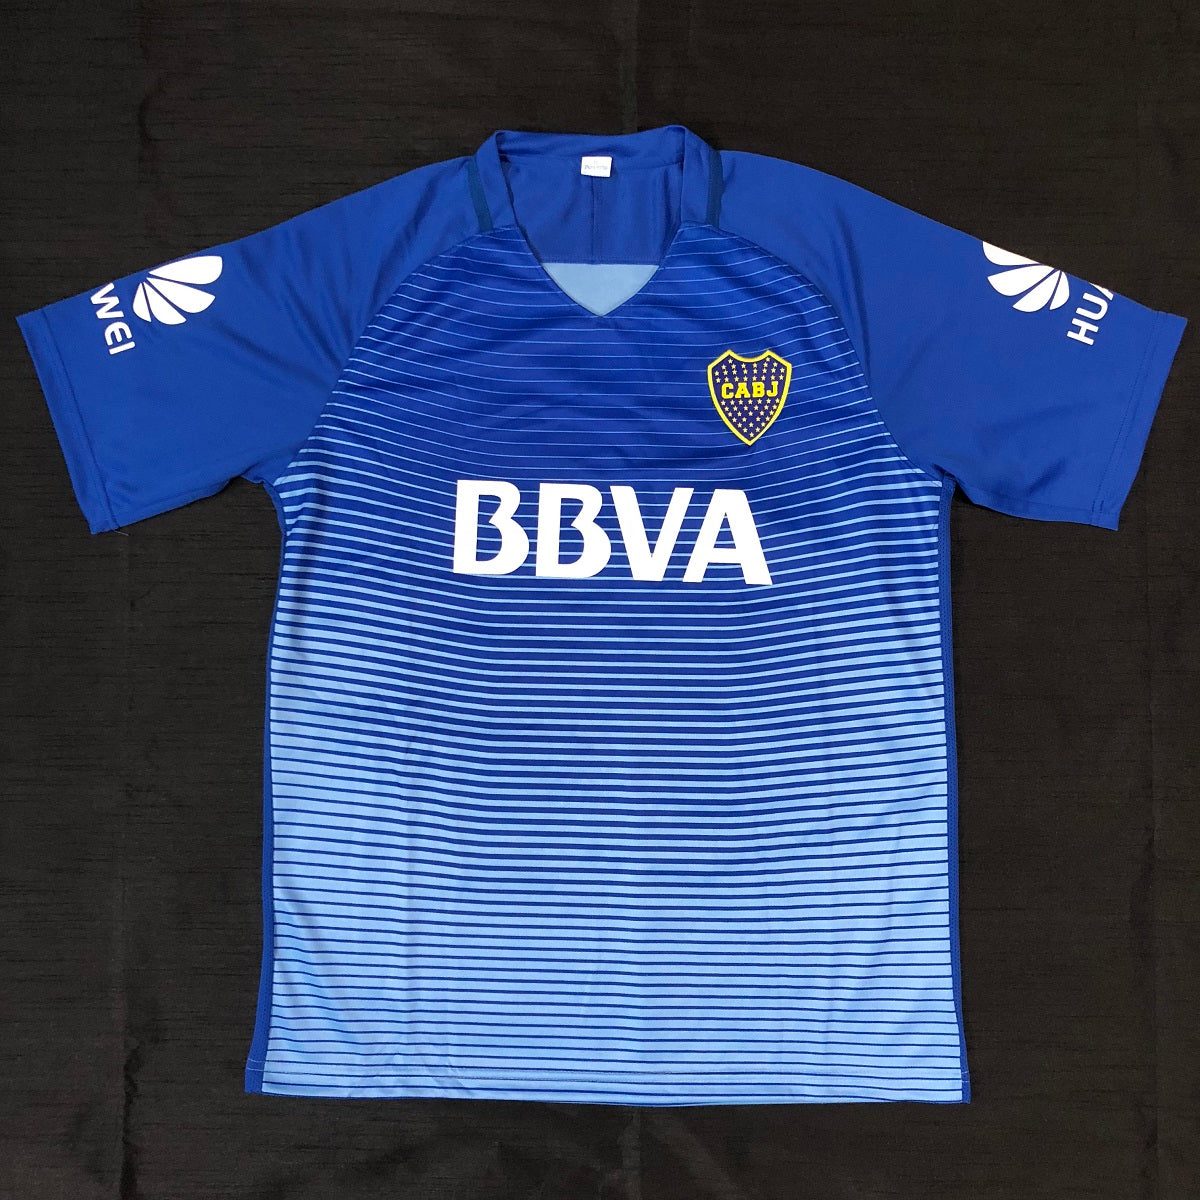 online retailer 6b002 36705 Boca Juniors 2017/18 Away Shirt ~Replica Version